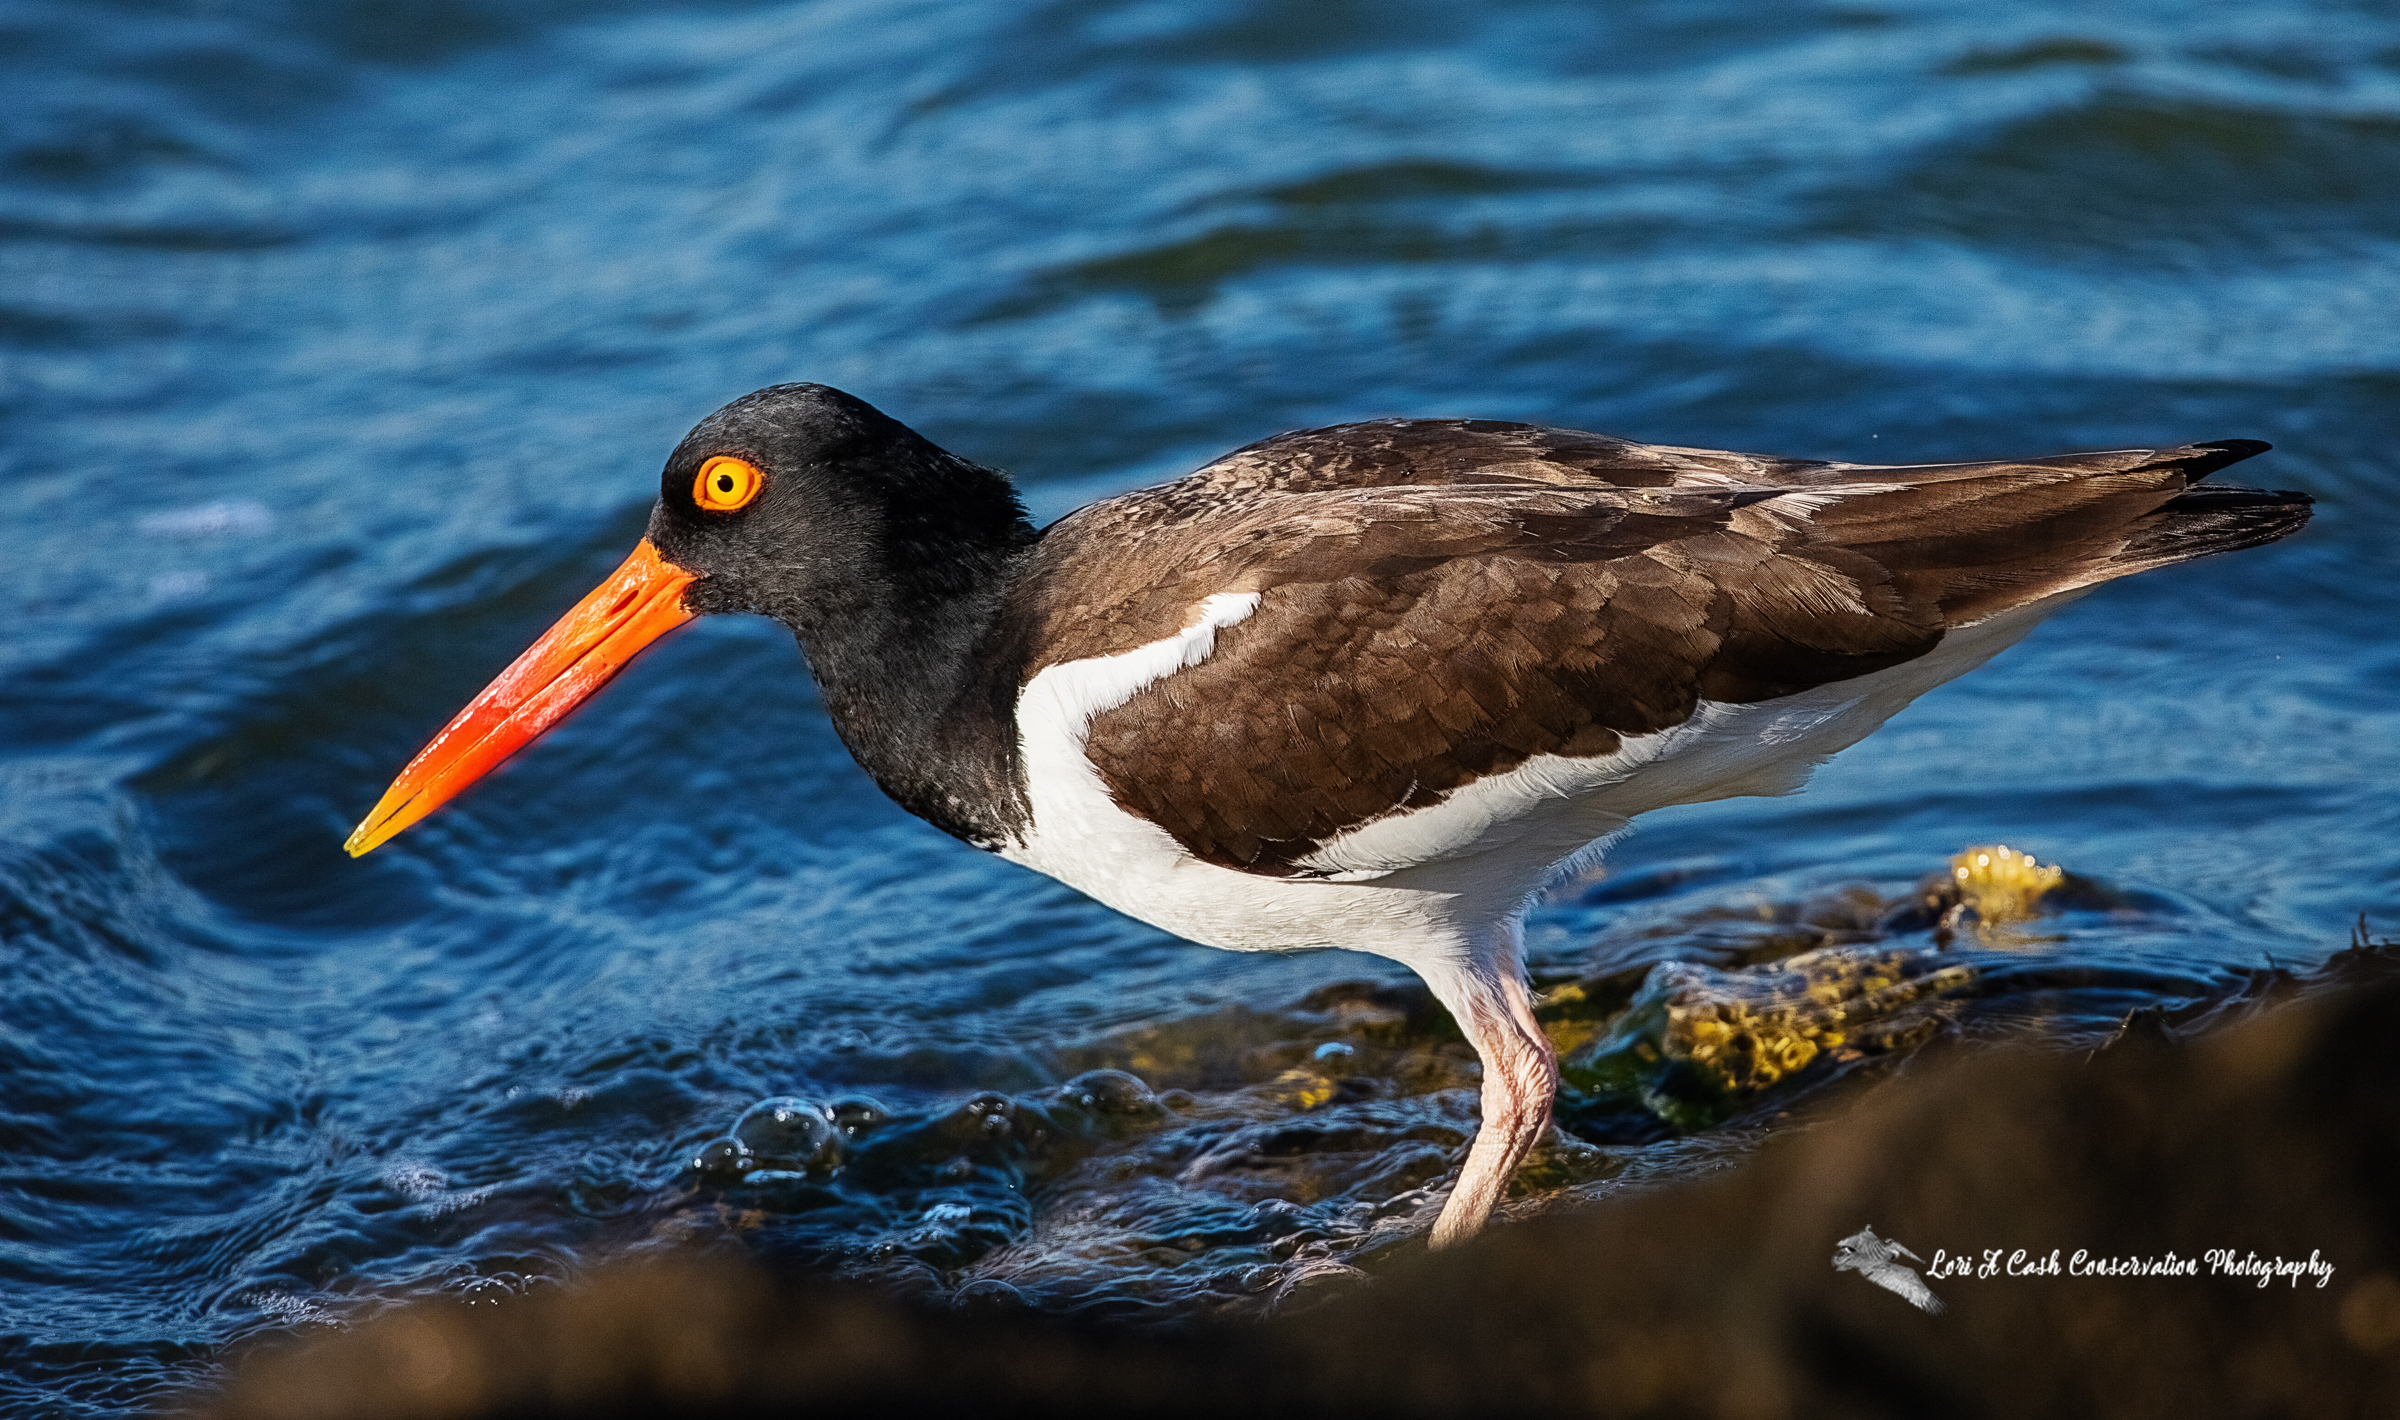 American oystercatcher (Haematopus palliatus) standing on the rocks looking for food to feed its chick nearby at Fort Monroe in Hampton, Virginia.